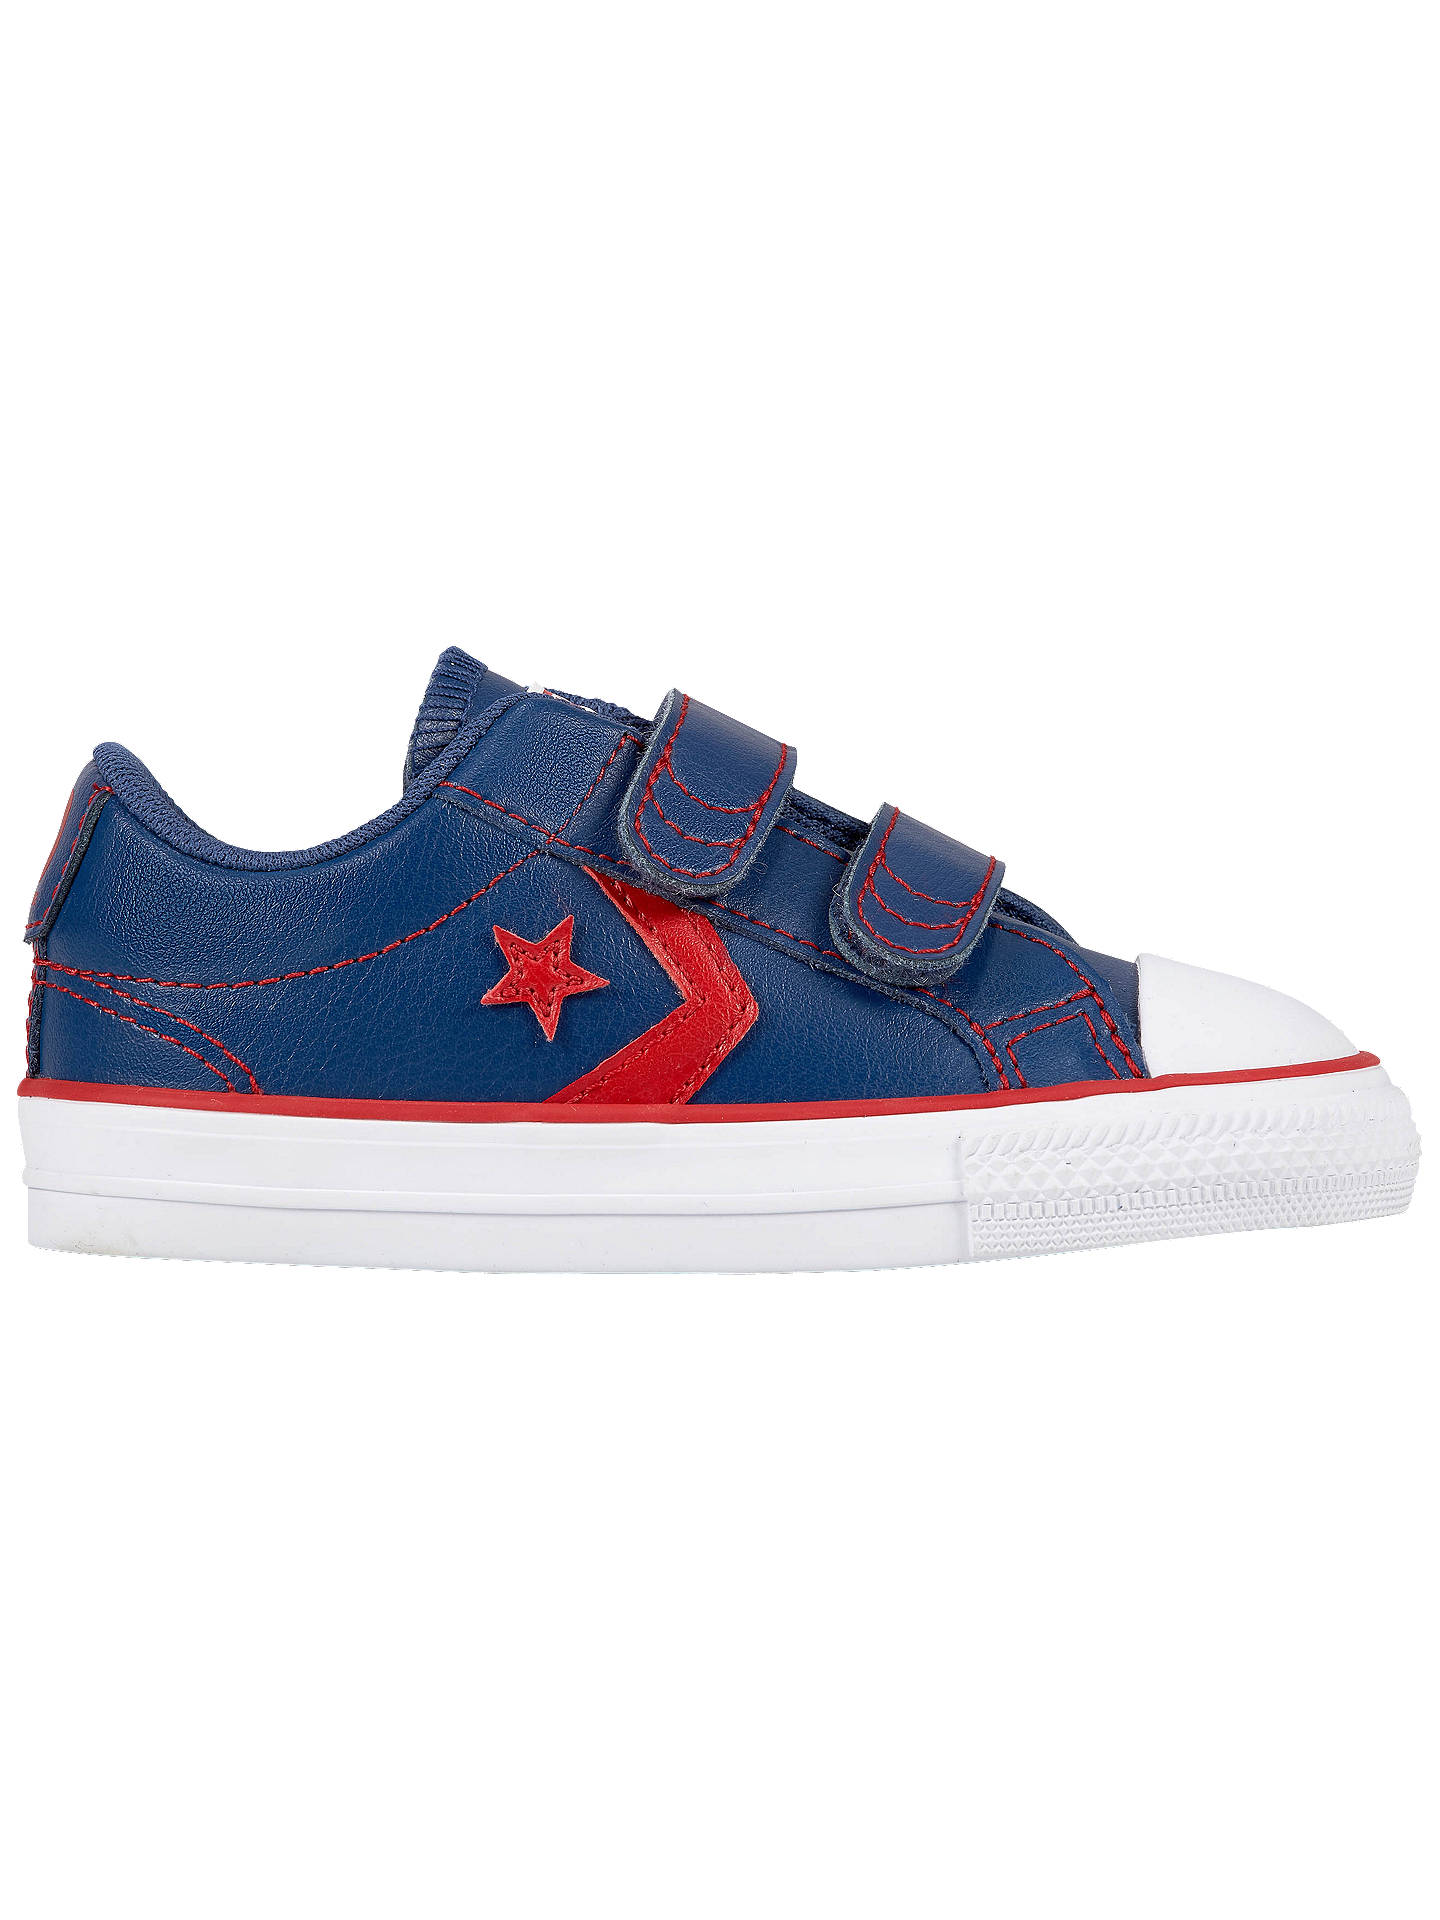 cba4d3e940a3 BuyConverse Children s Star Player 2V Double Riptape Shoes